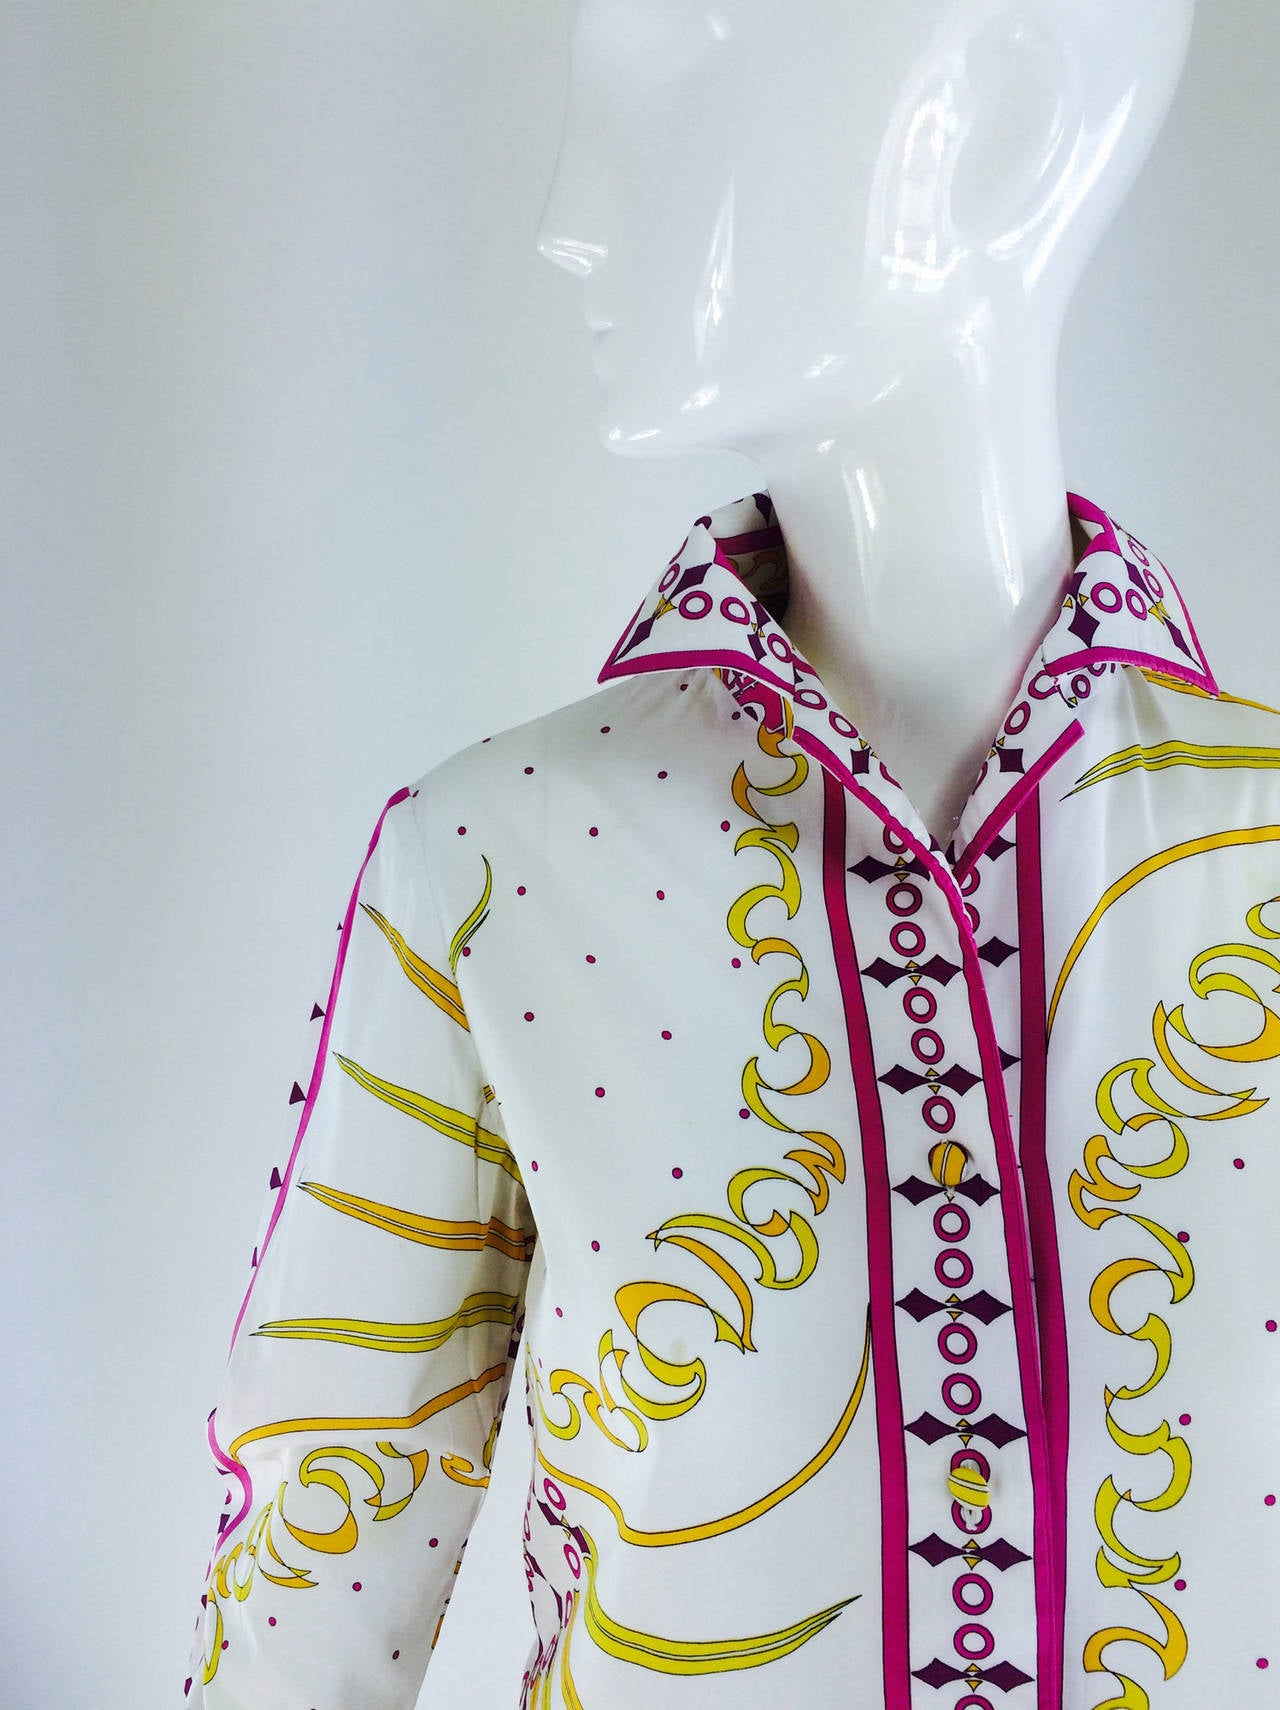 Pucci cotton print blouse & skirt set 1960st...Crisp white cotton with hot pink, yellow, purple and black print of ribbons, stars & wild looking birds...The long sleeve blouse buttons at the front and cuffs with self buttons (extra buttons